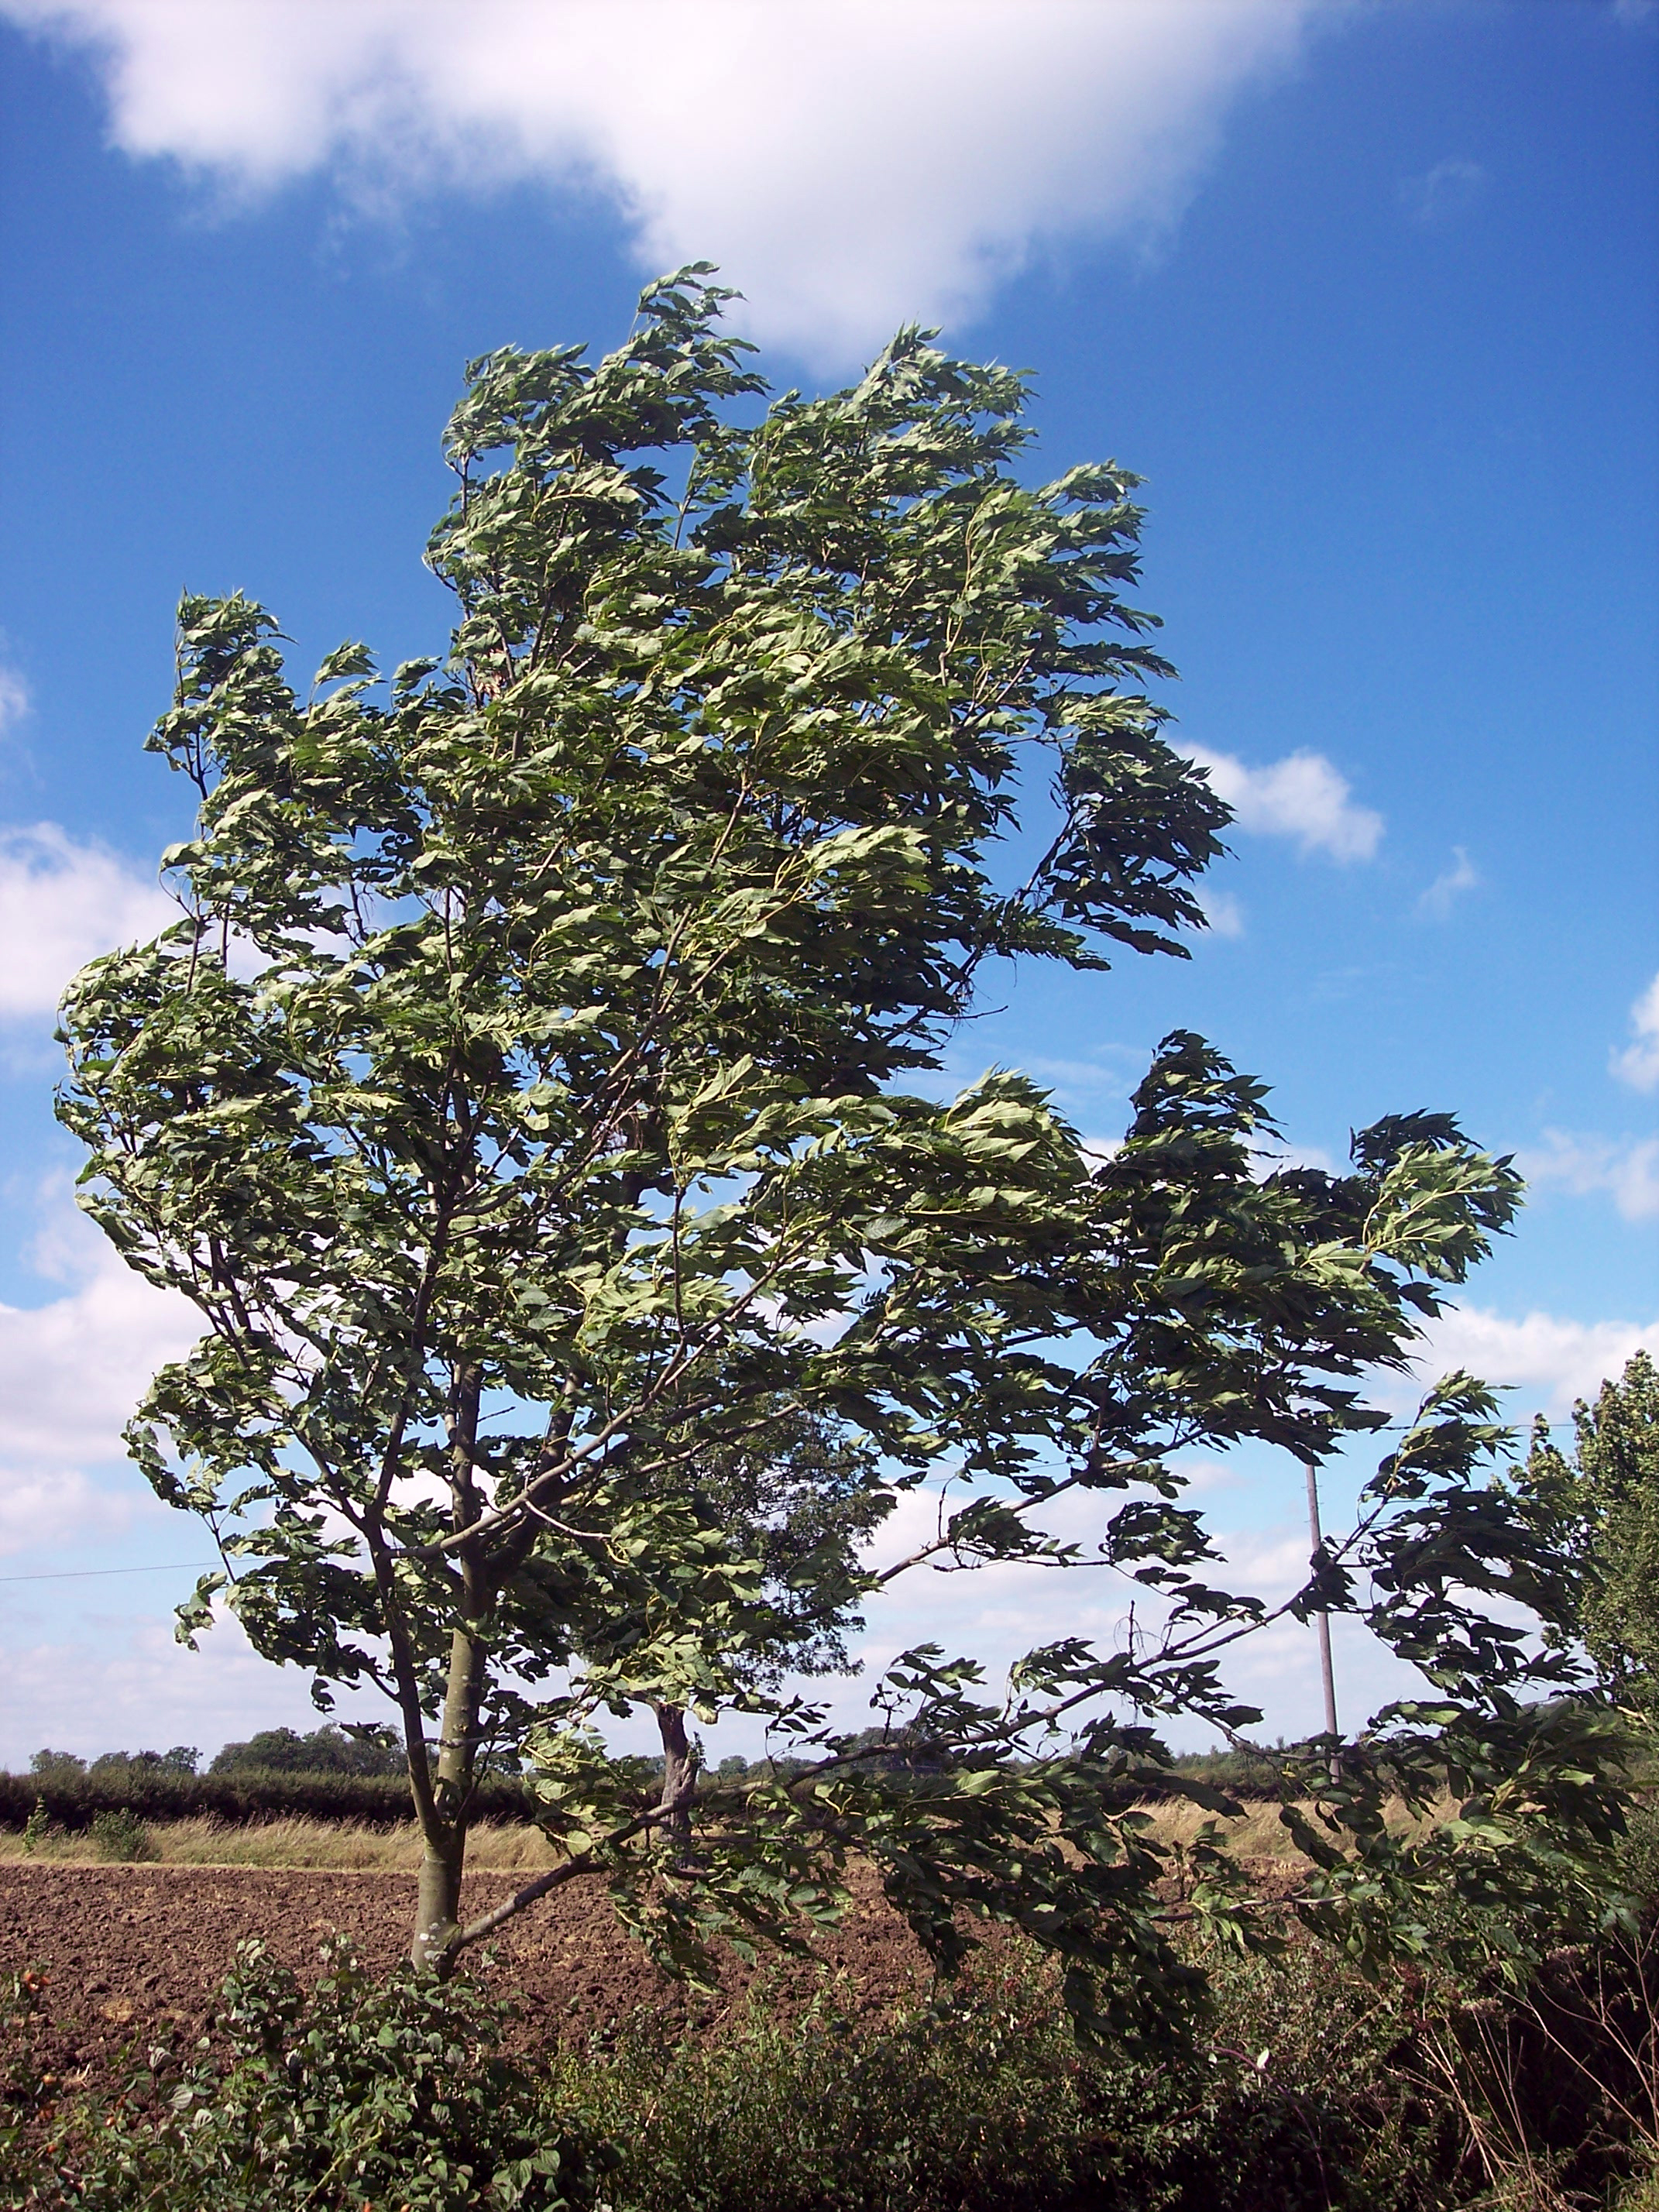 A very common tree that can reach a height of 30-32 meters. In late Autumn /winter it can be easily distinguished by its black buds and in summer by its distinctive pinnate leaves. The flowers appear in April before the leaves and are wind pollinated. It produces both male, female and bisexual flowe...